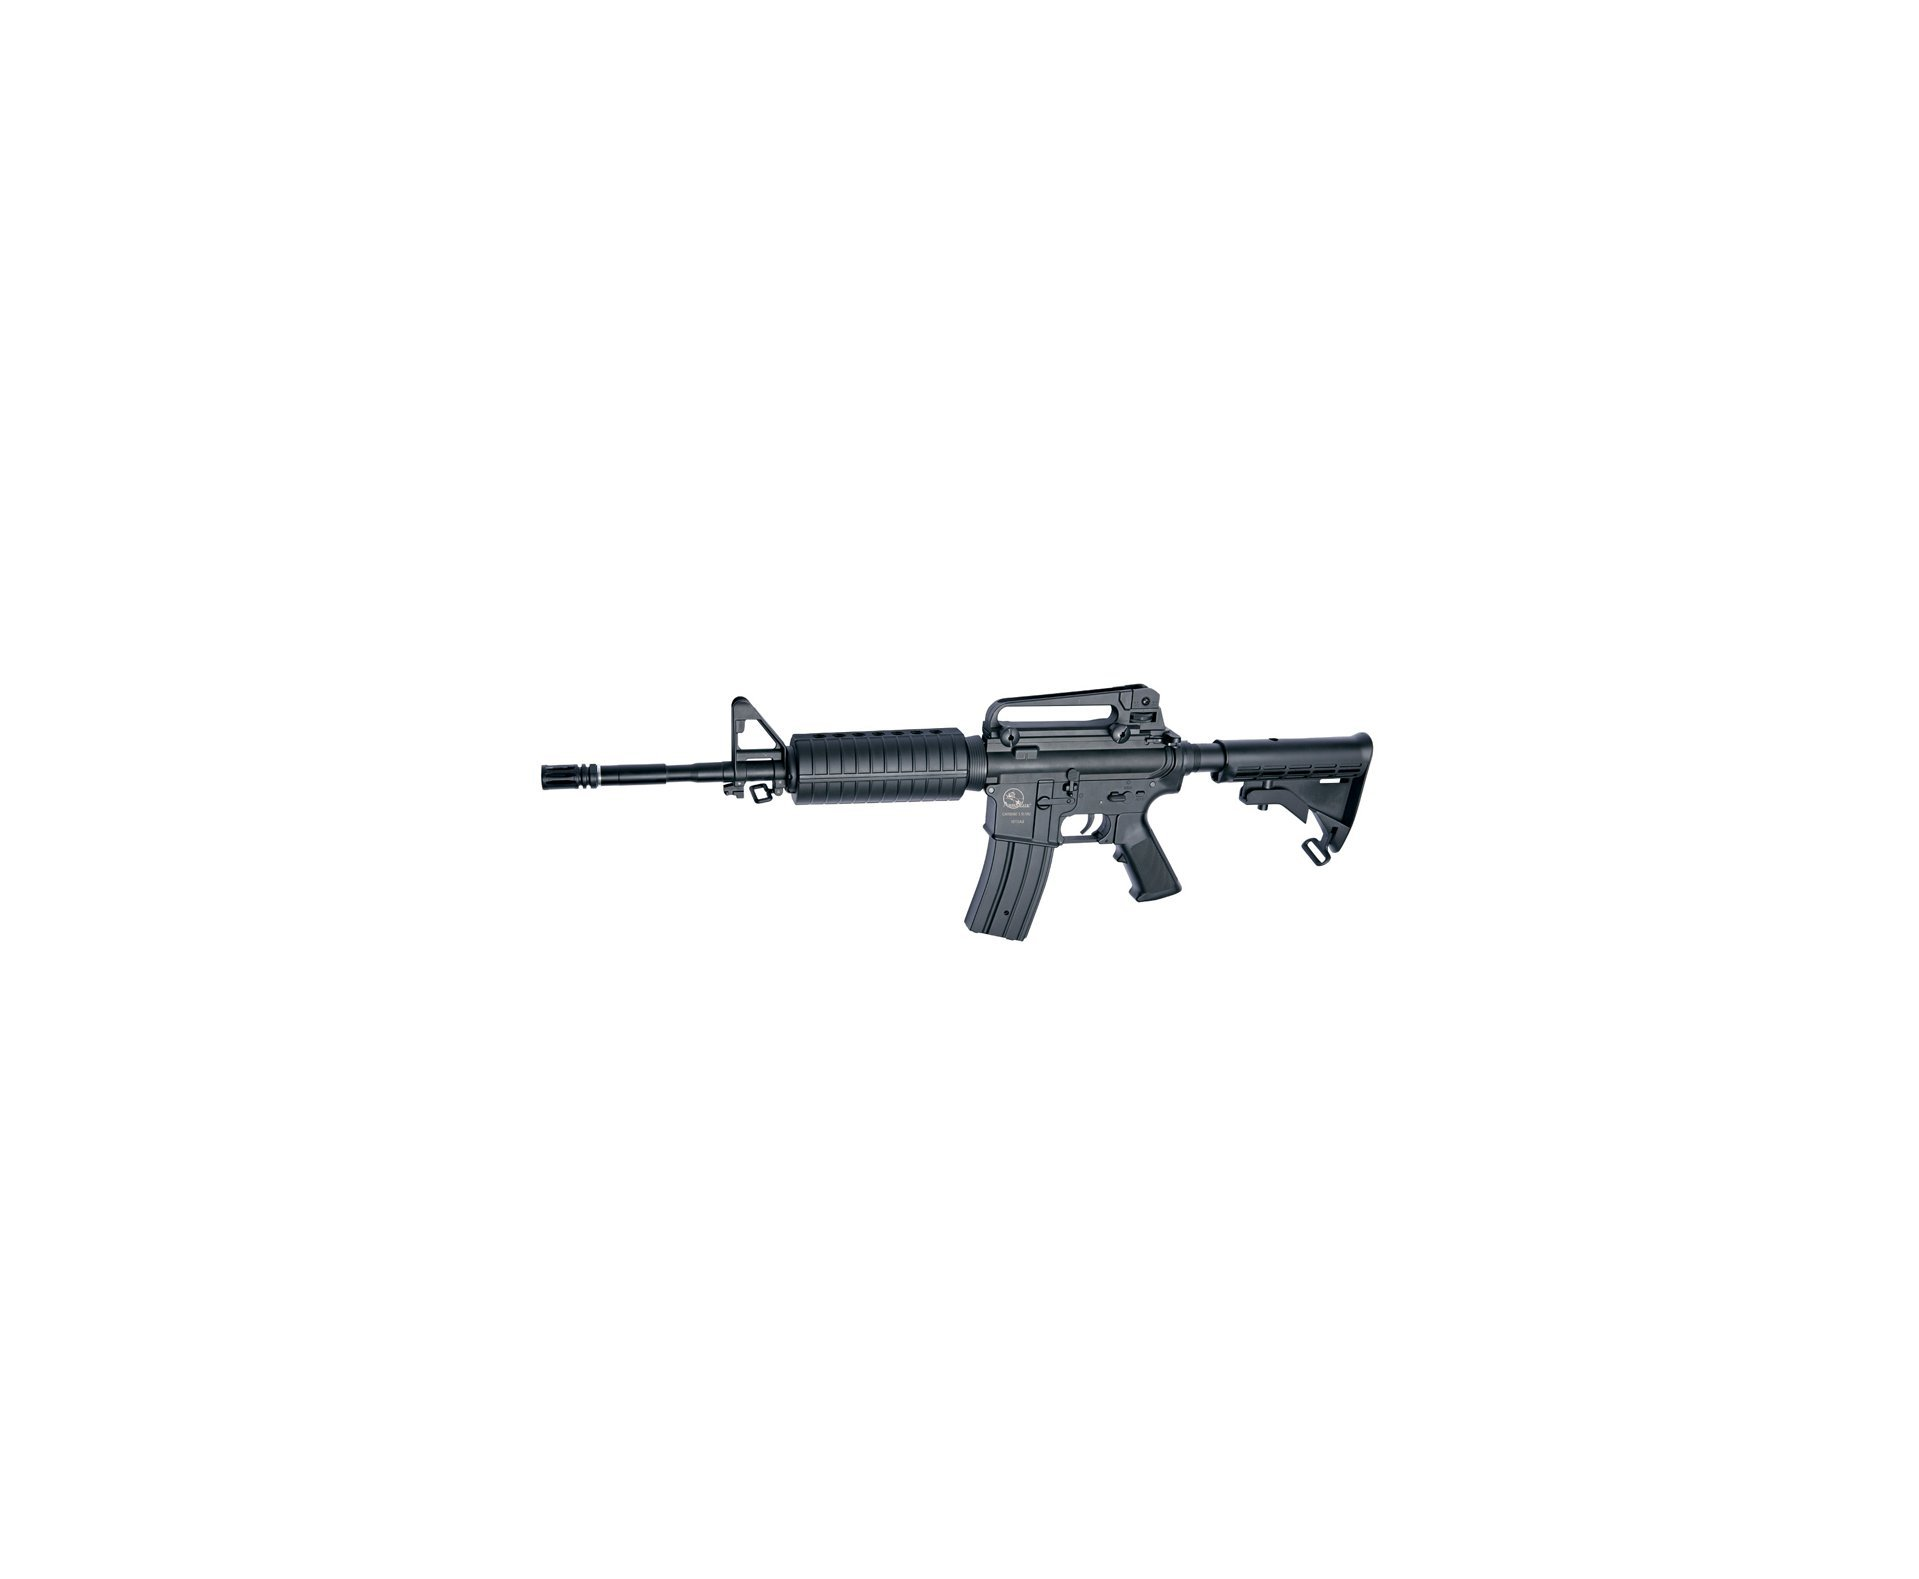 Rifle De Airsoft M15a4 - Semi Metal - Calibre 6,0 Mm - Asg